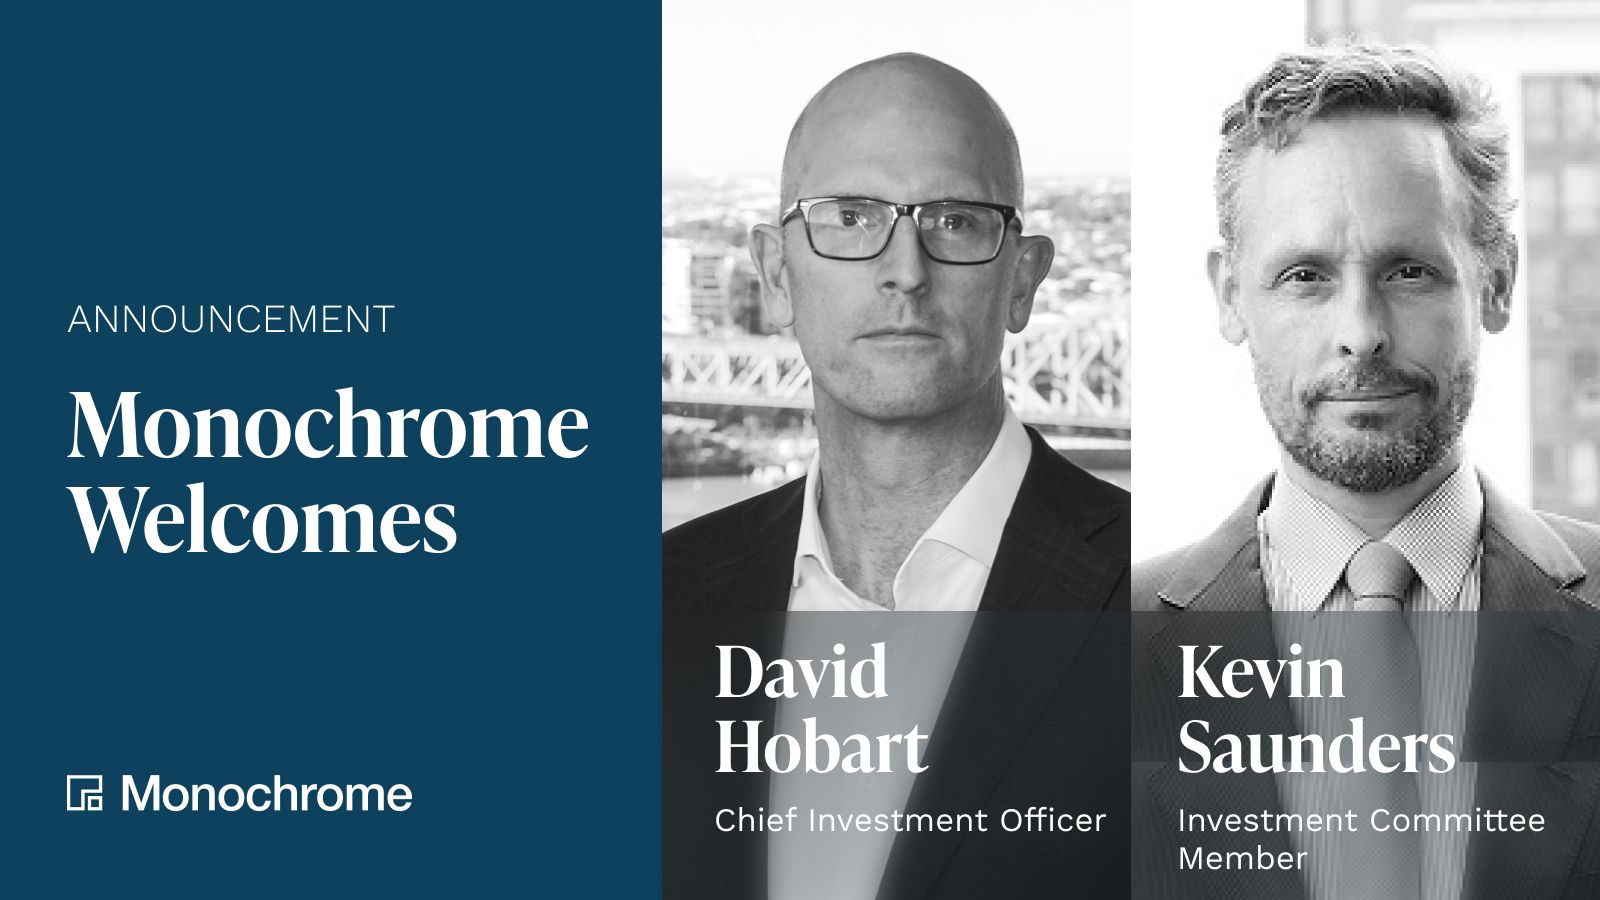 1600x900_David Hobart_Kevin Saunders_New Appointment Announcement_Monochrome Asset Management.jpg